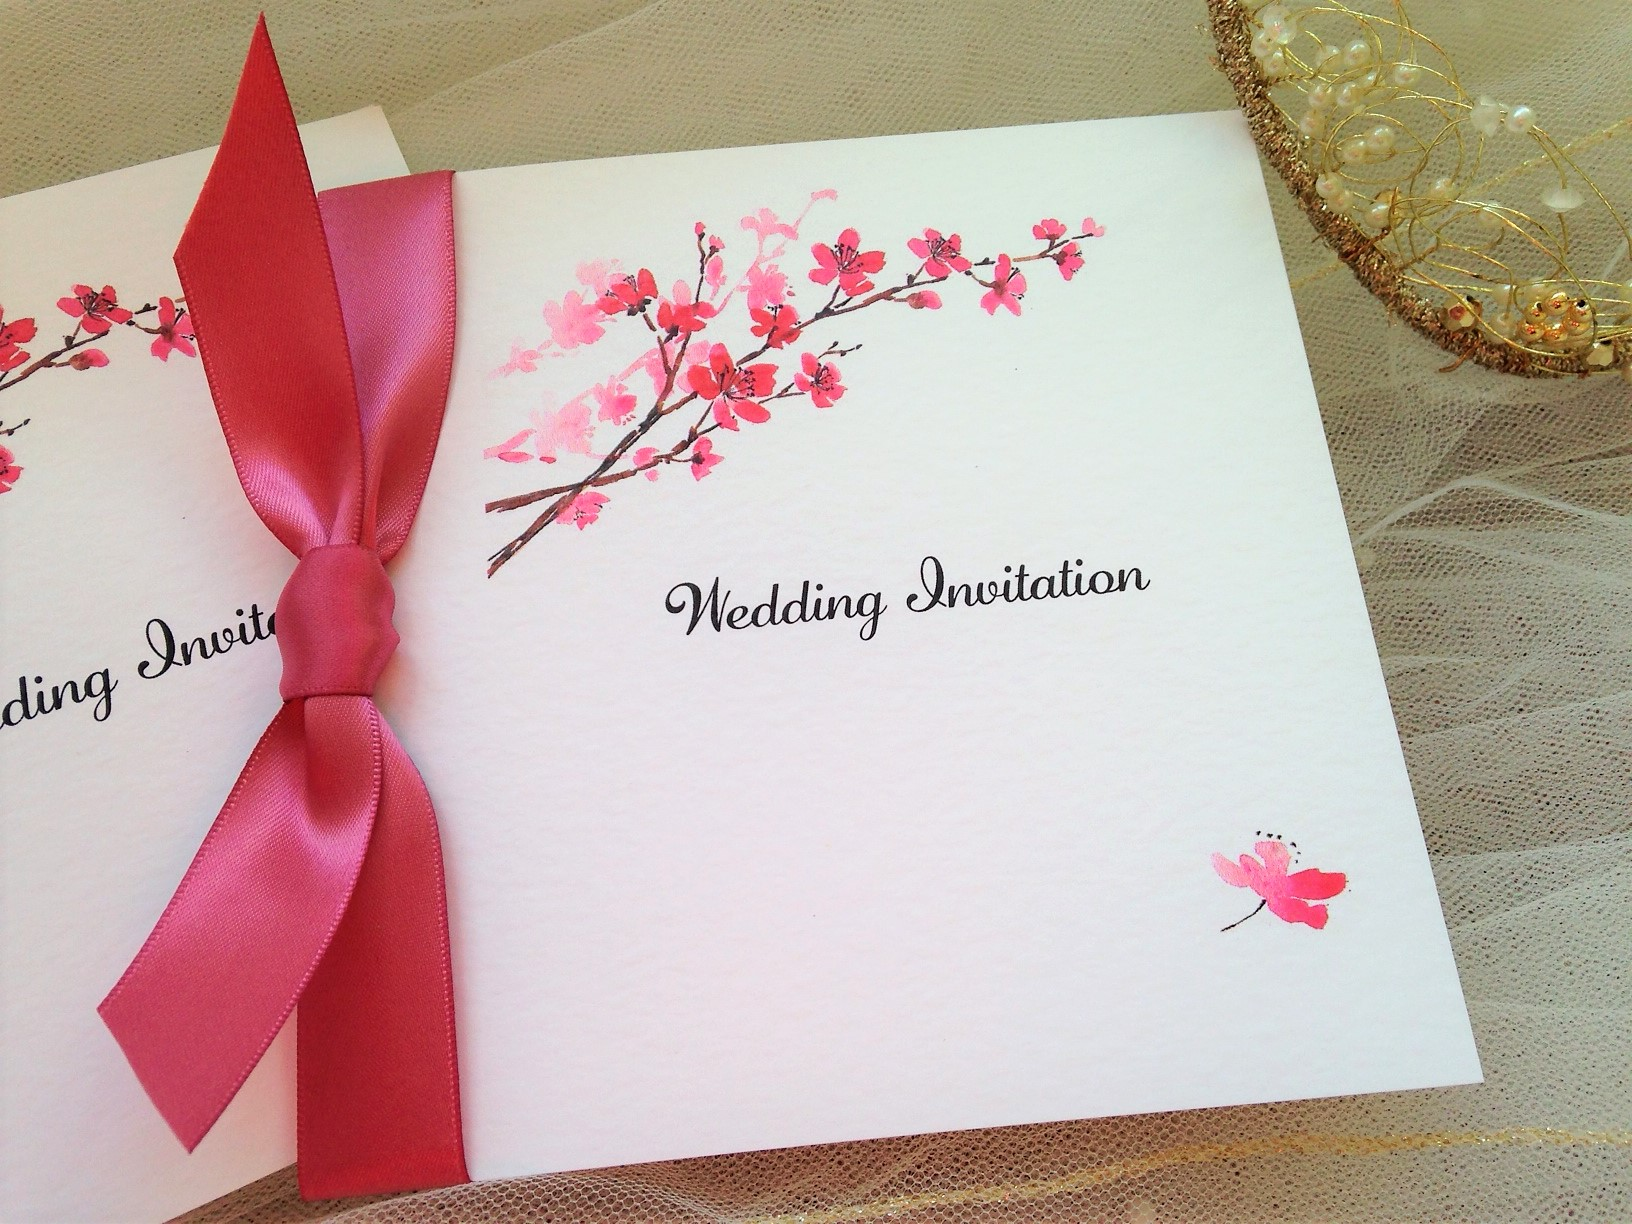 wedding invitations with ribbon from 85p each with free envelopes